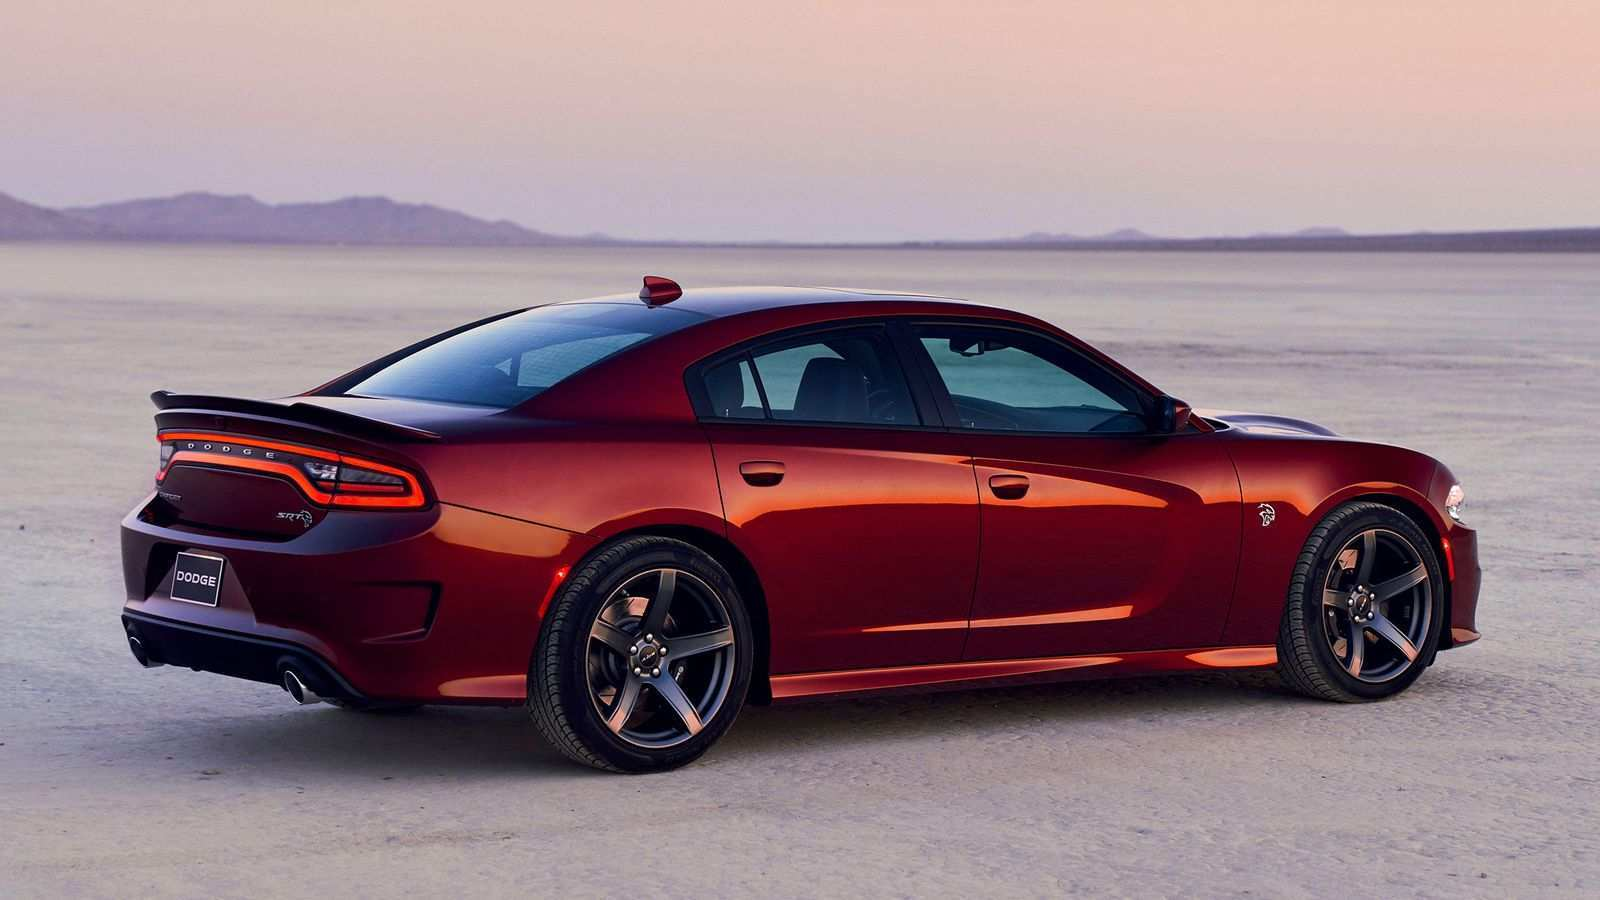 92 New Best Release Date For 2019 Dodge Charger Price And Review New Concept by Best Release Date For 2019 Dodge Charger Price And Review